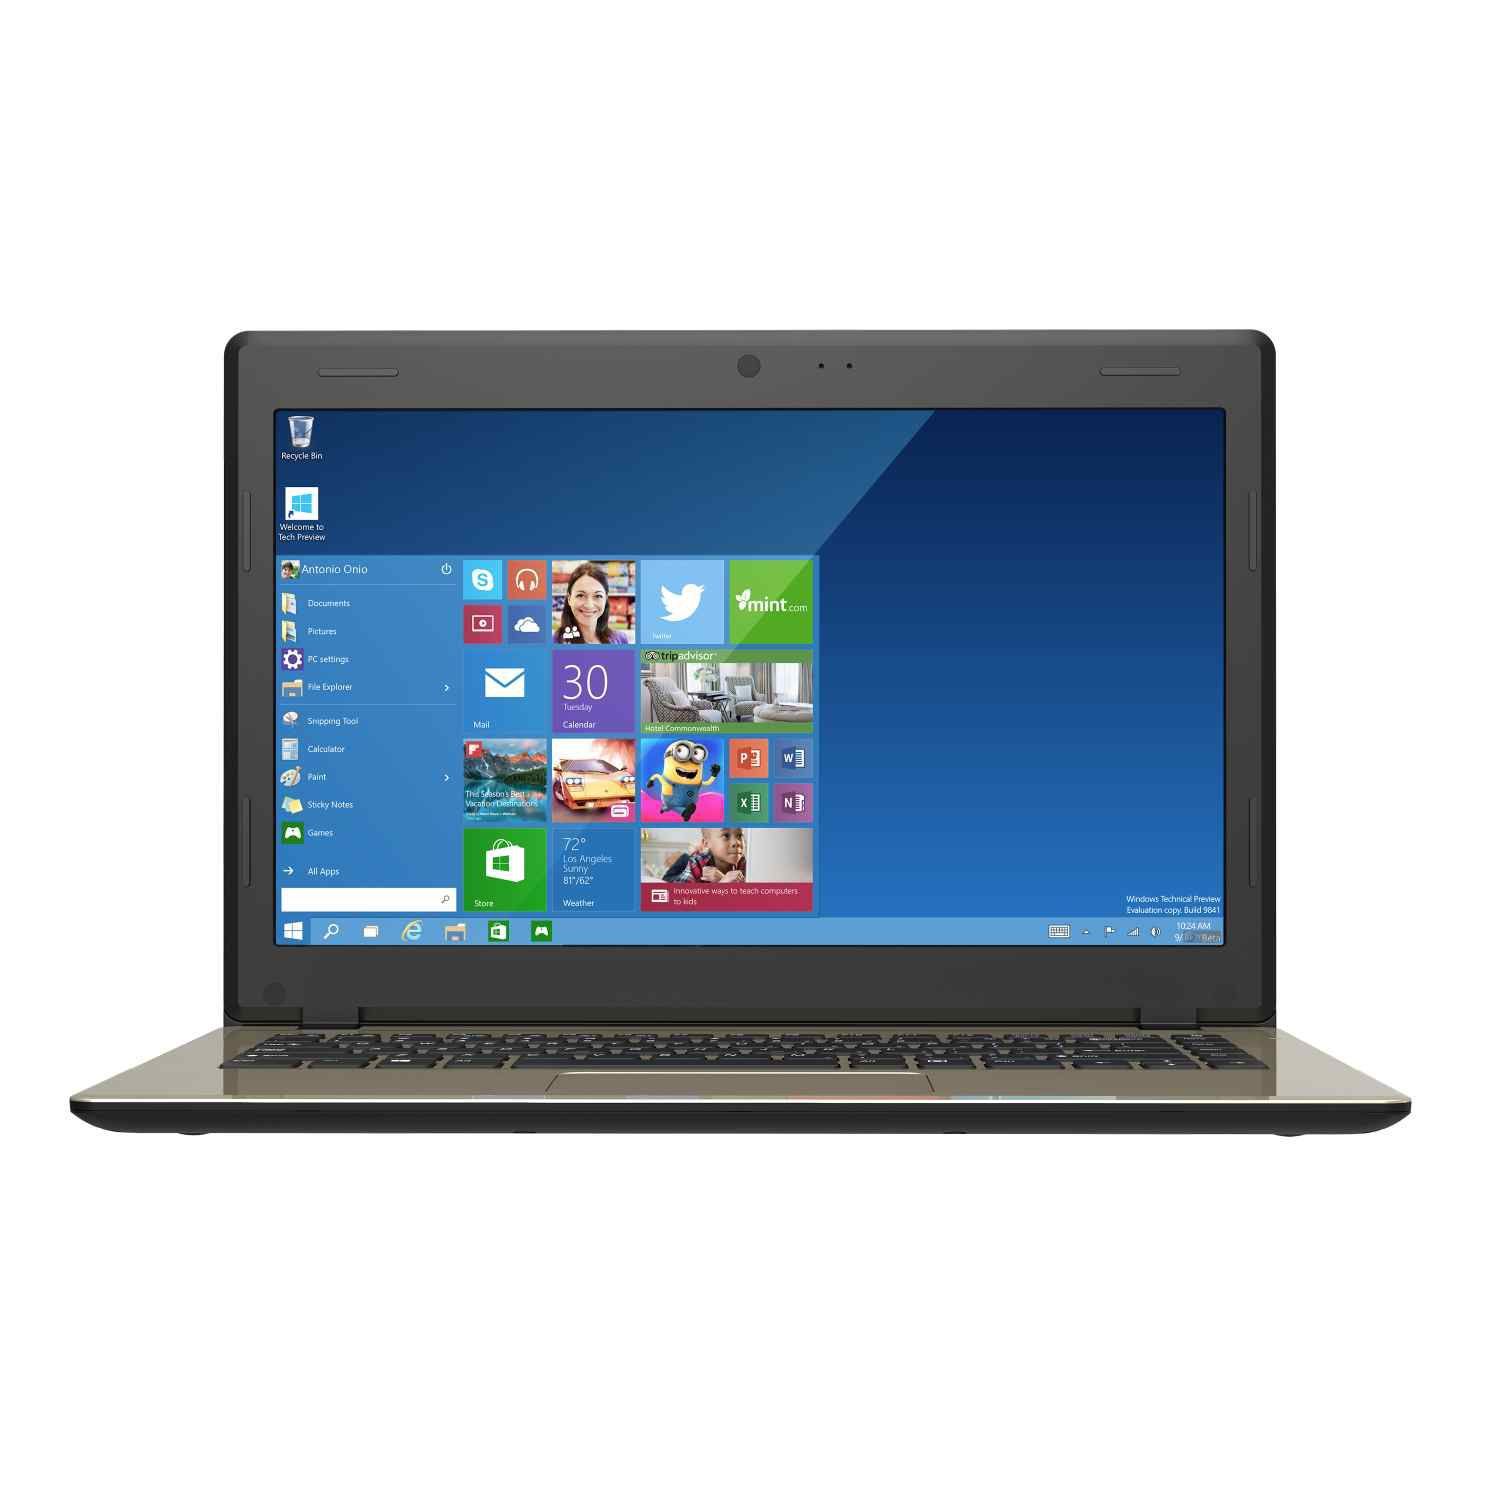 InFocus Buddy (V+) Laptop (Intel Celeron- 2GB RAM- 32GB eMMC-...